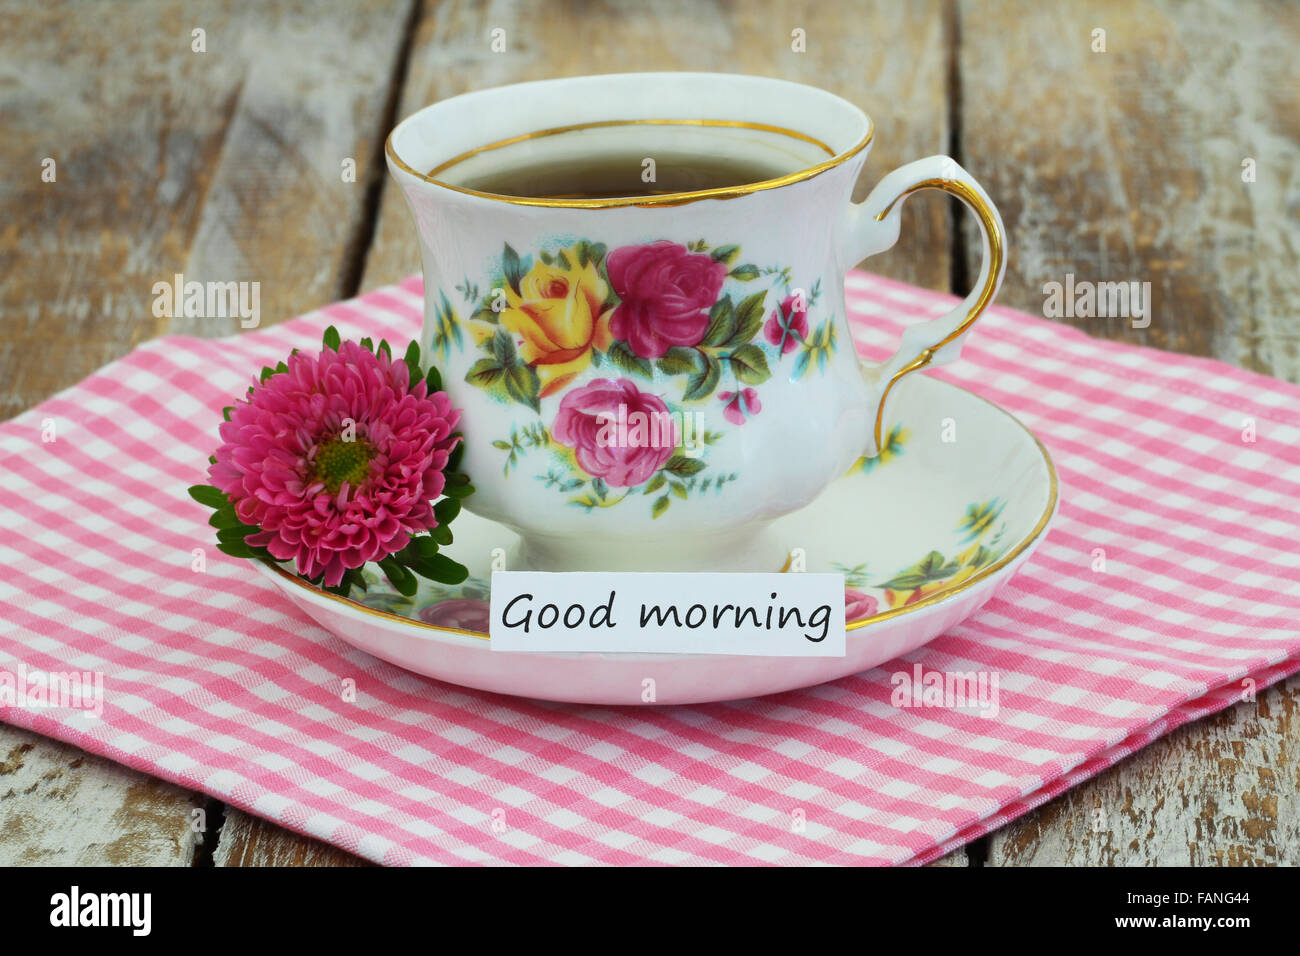 Good Morning Card With Tea In Vintage Cup And Pink Daisy Stock Photo